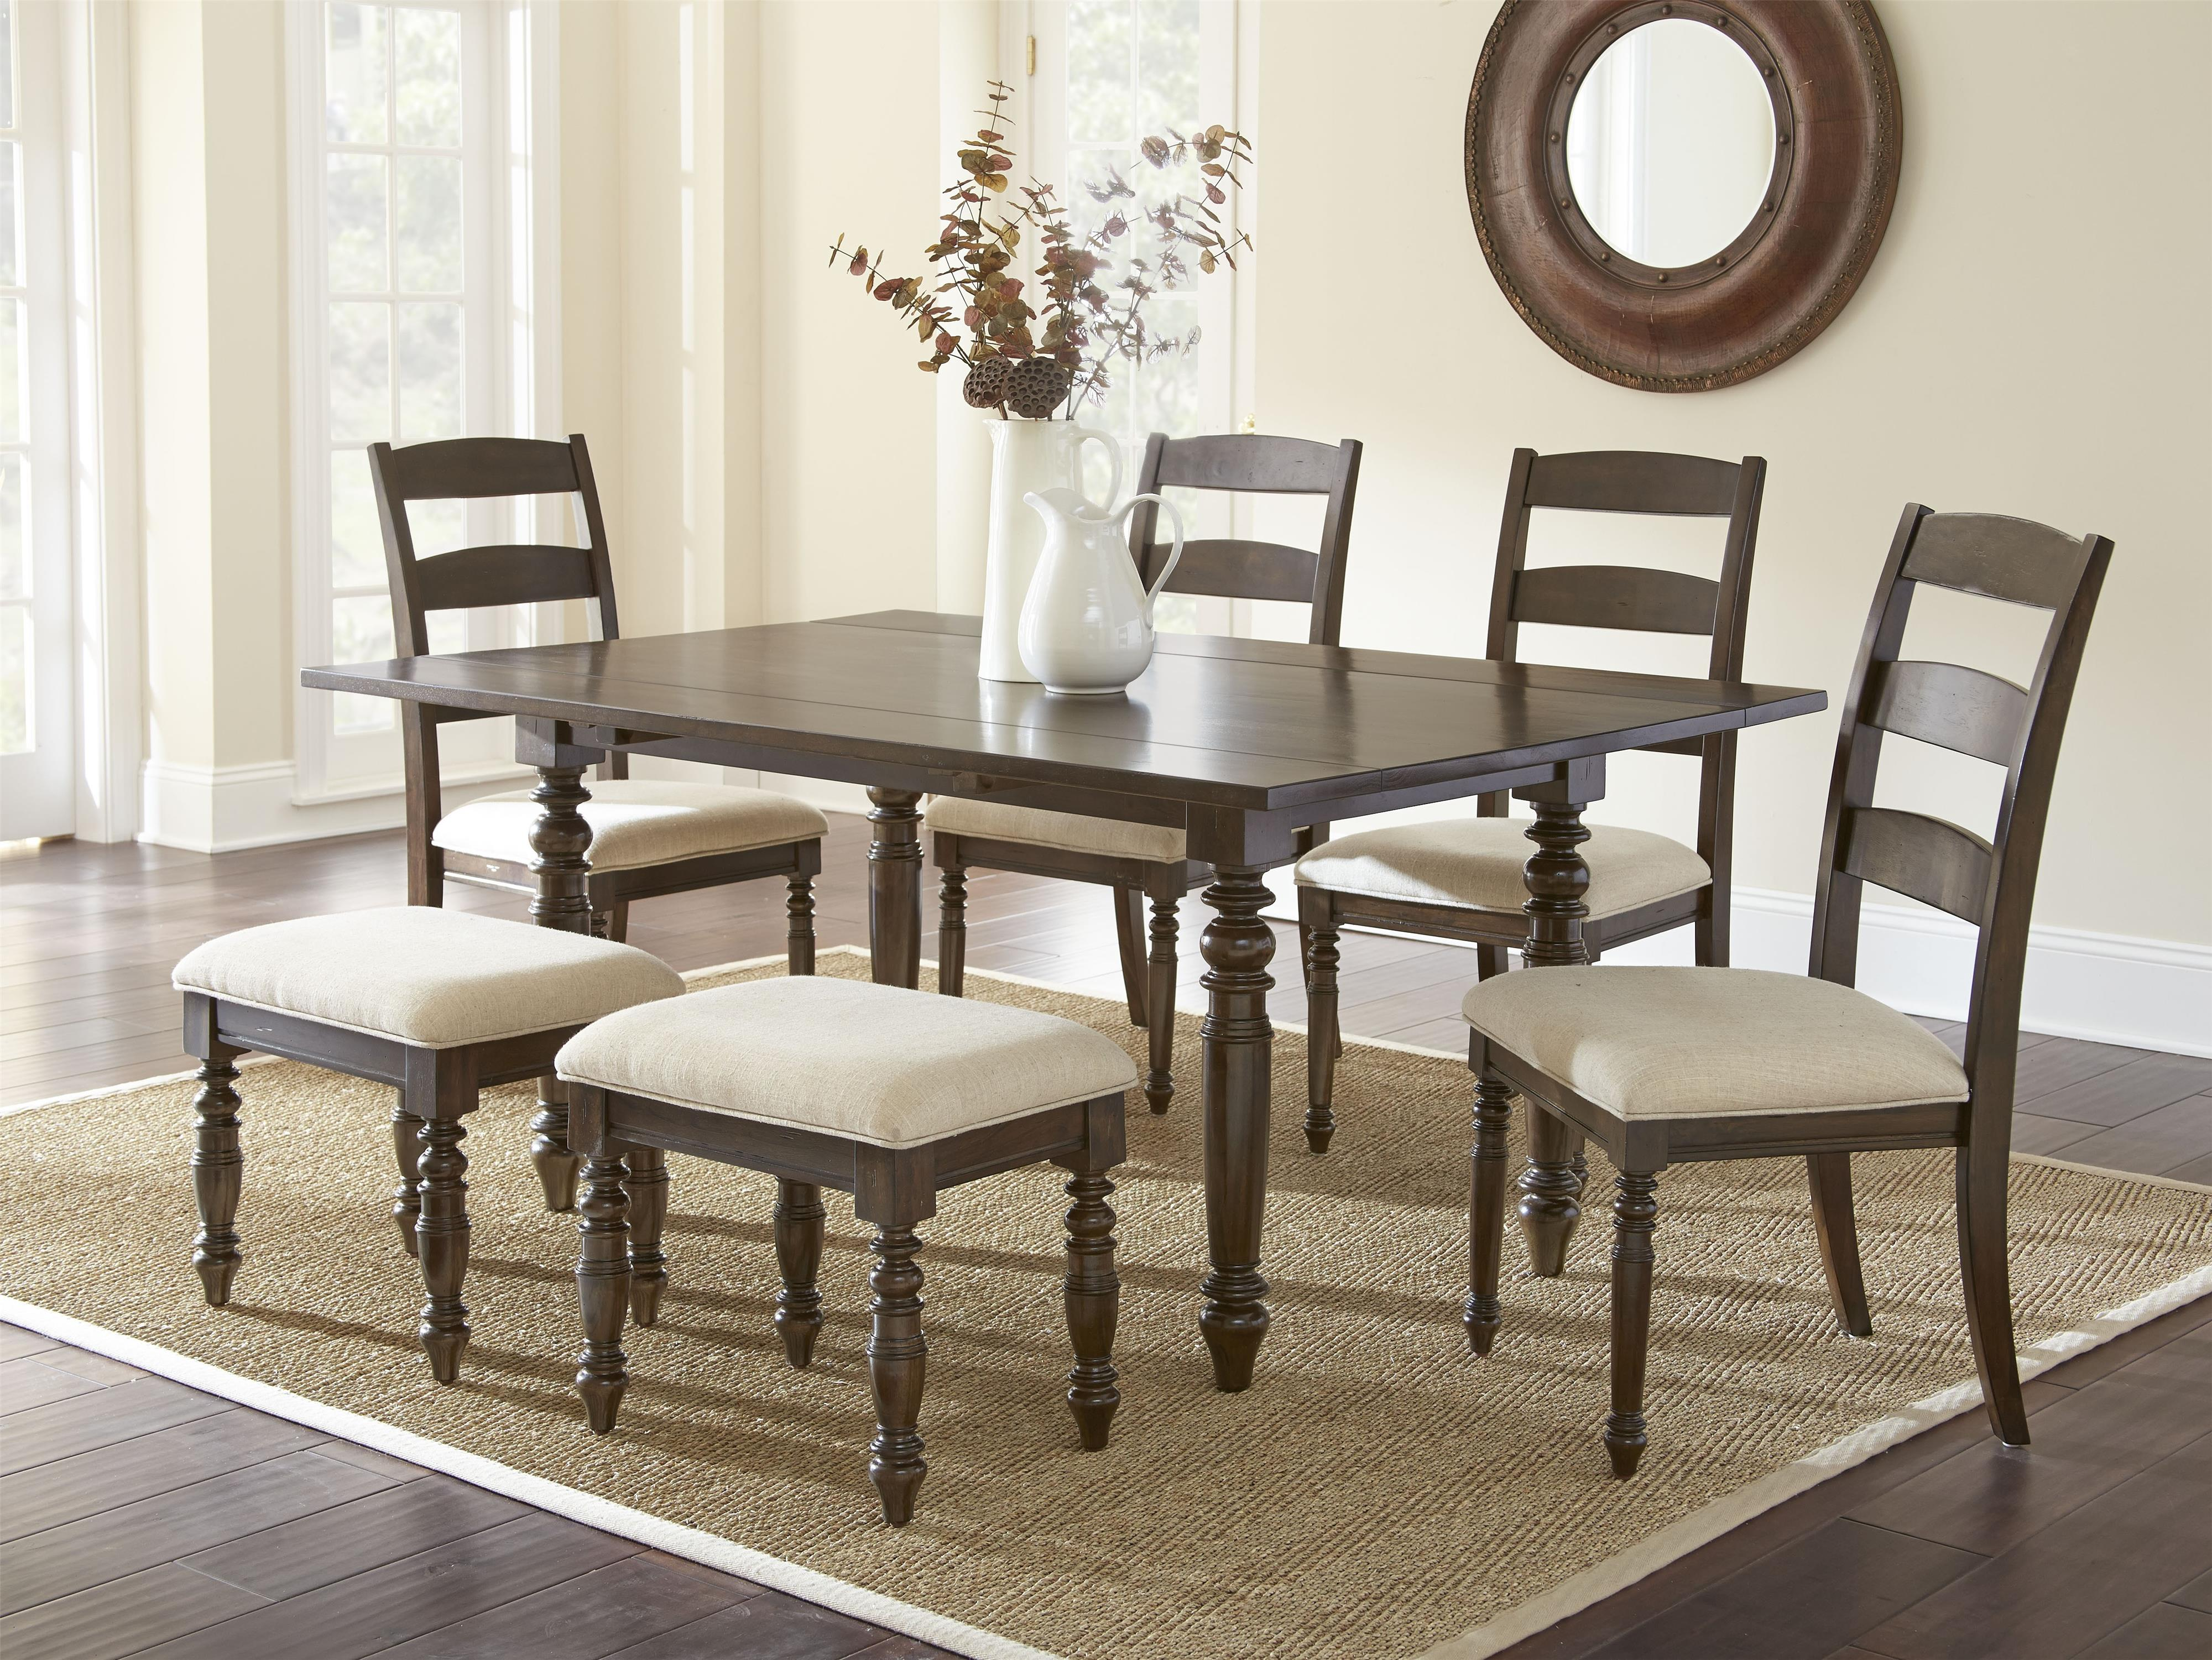 Steve Silver Bexley 7 Piece Dining Set - Item Number: BY550T+4xS+2xST